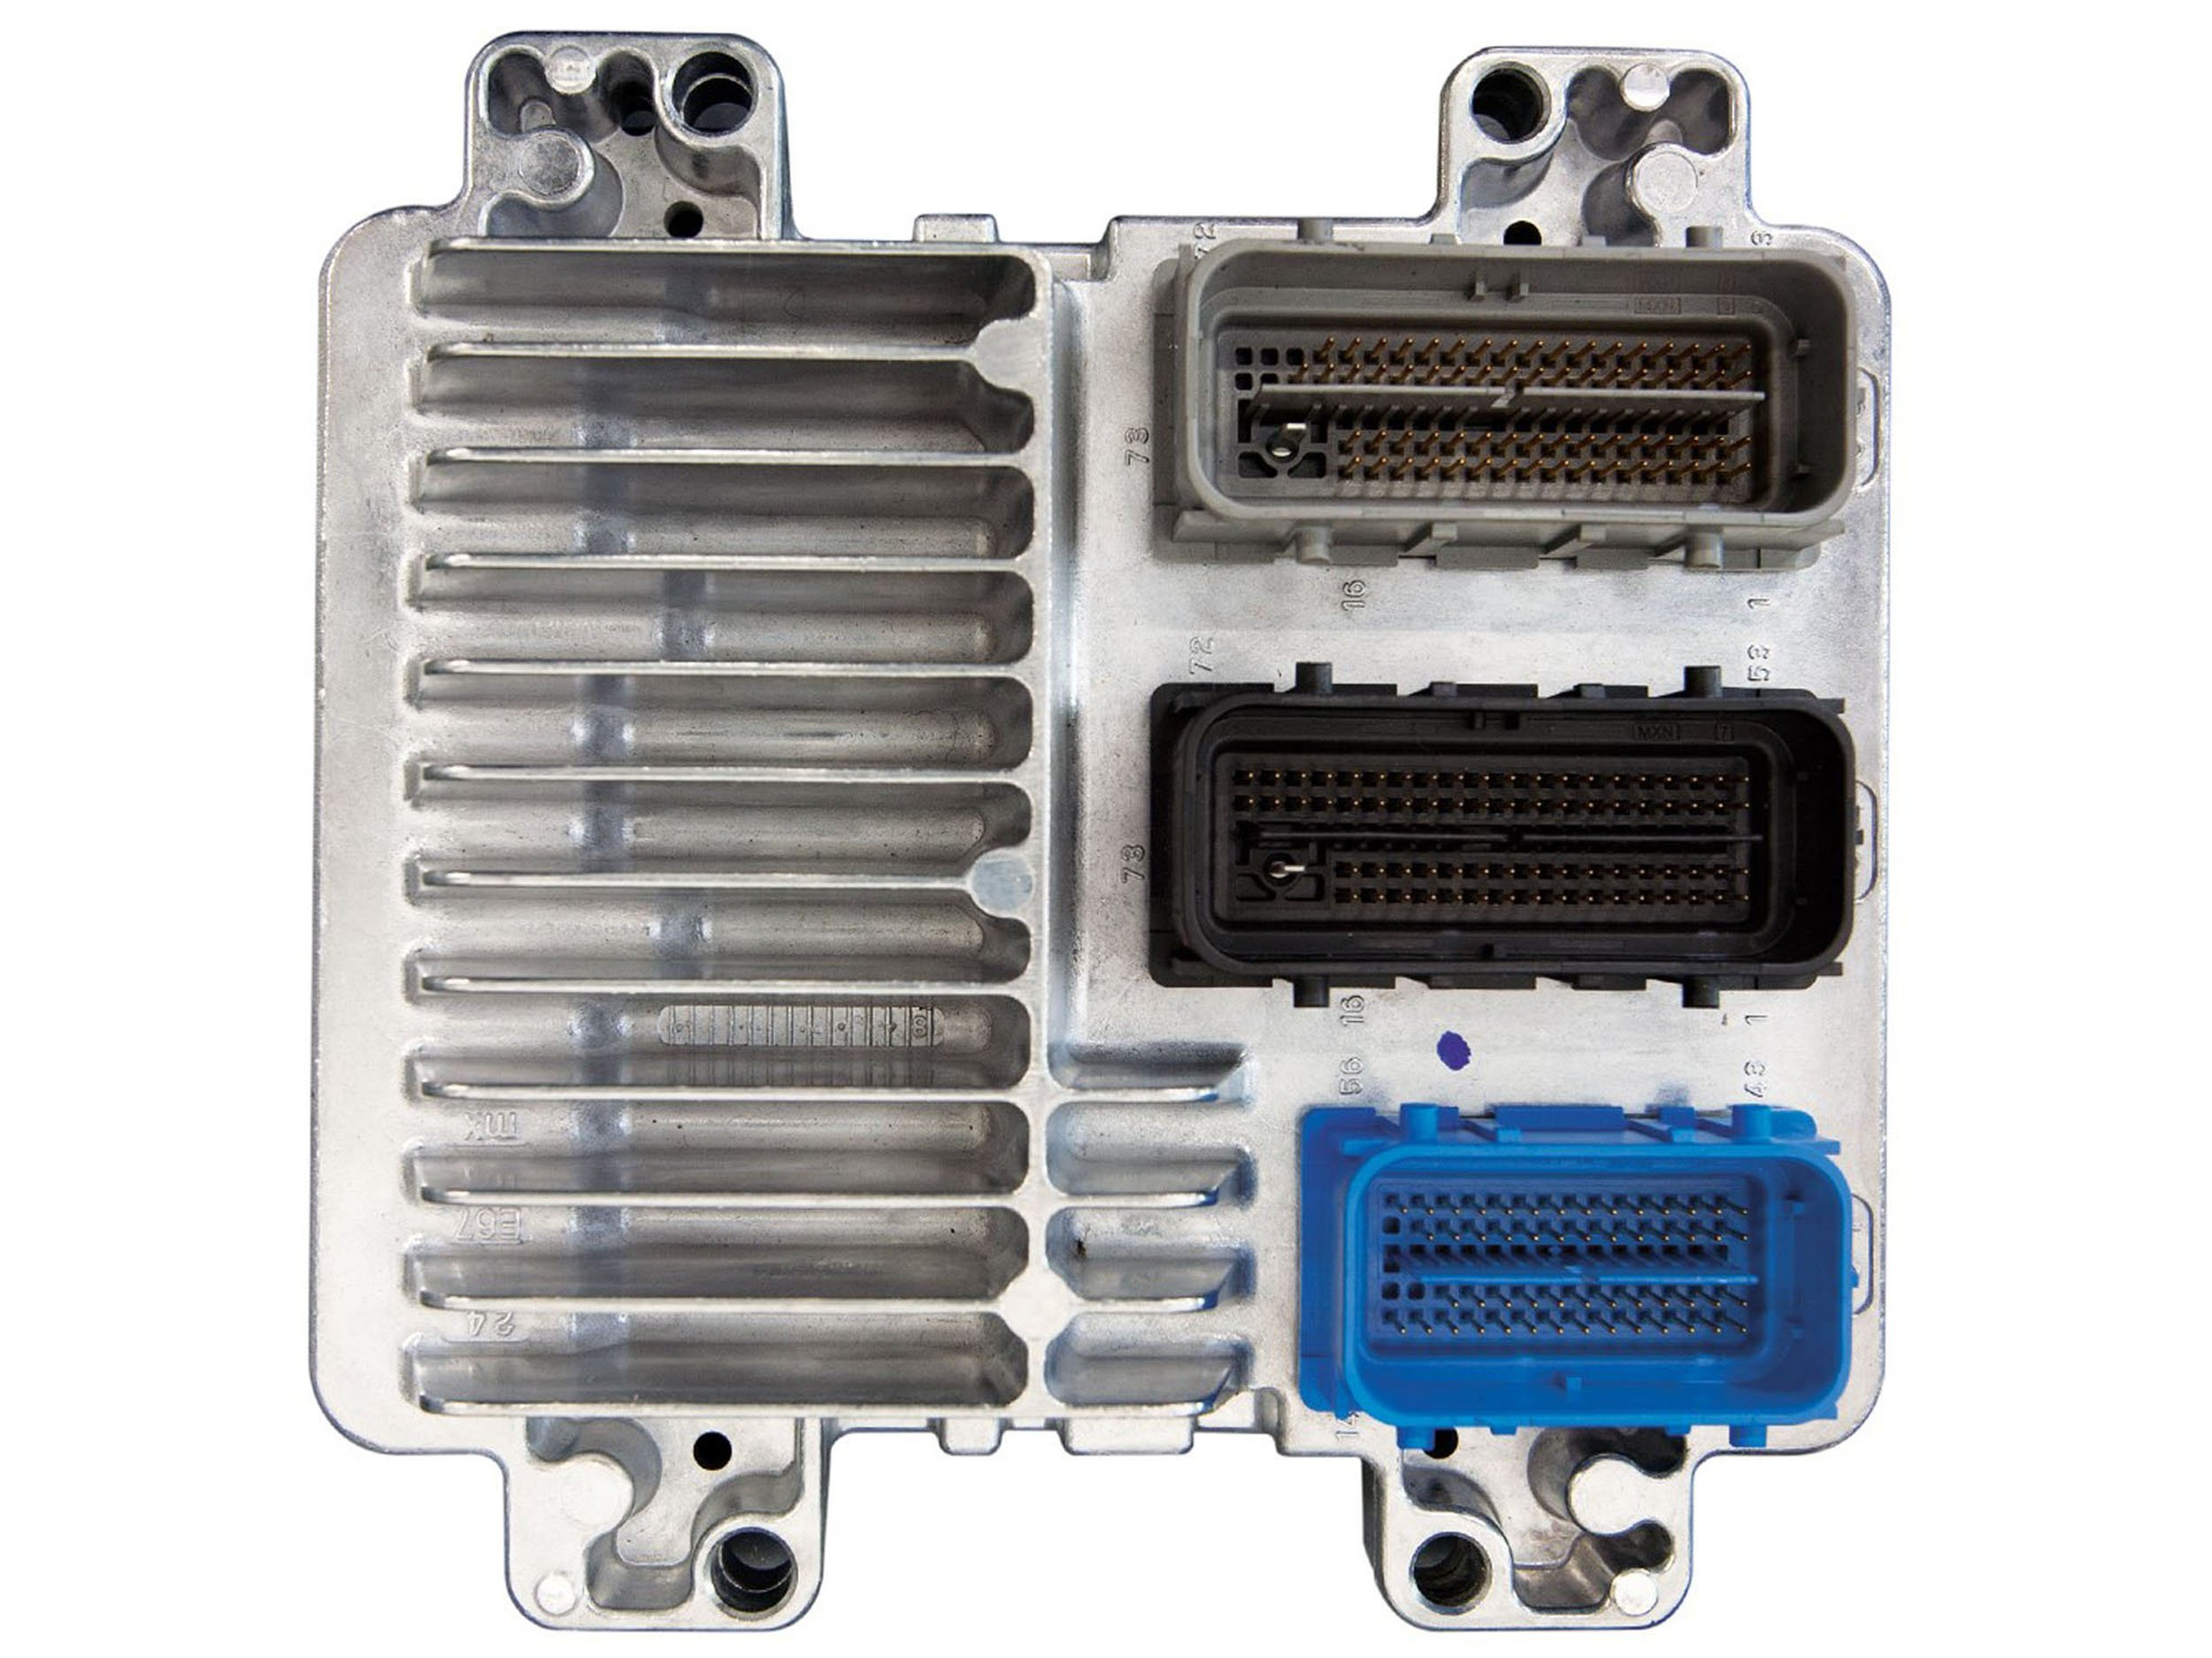 Ecu Pinout You Might Re Pin Or Made A Converter To Use A Blacktop Ecu